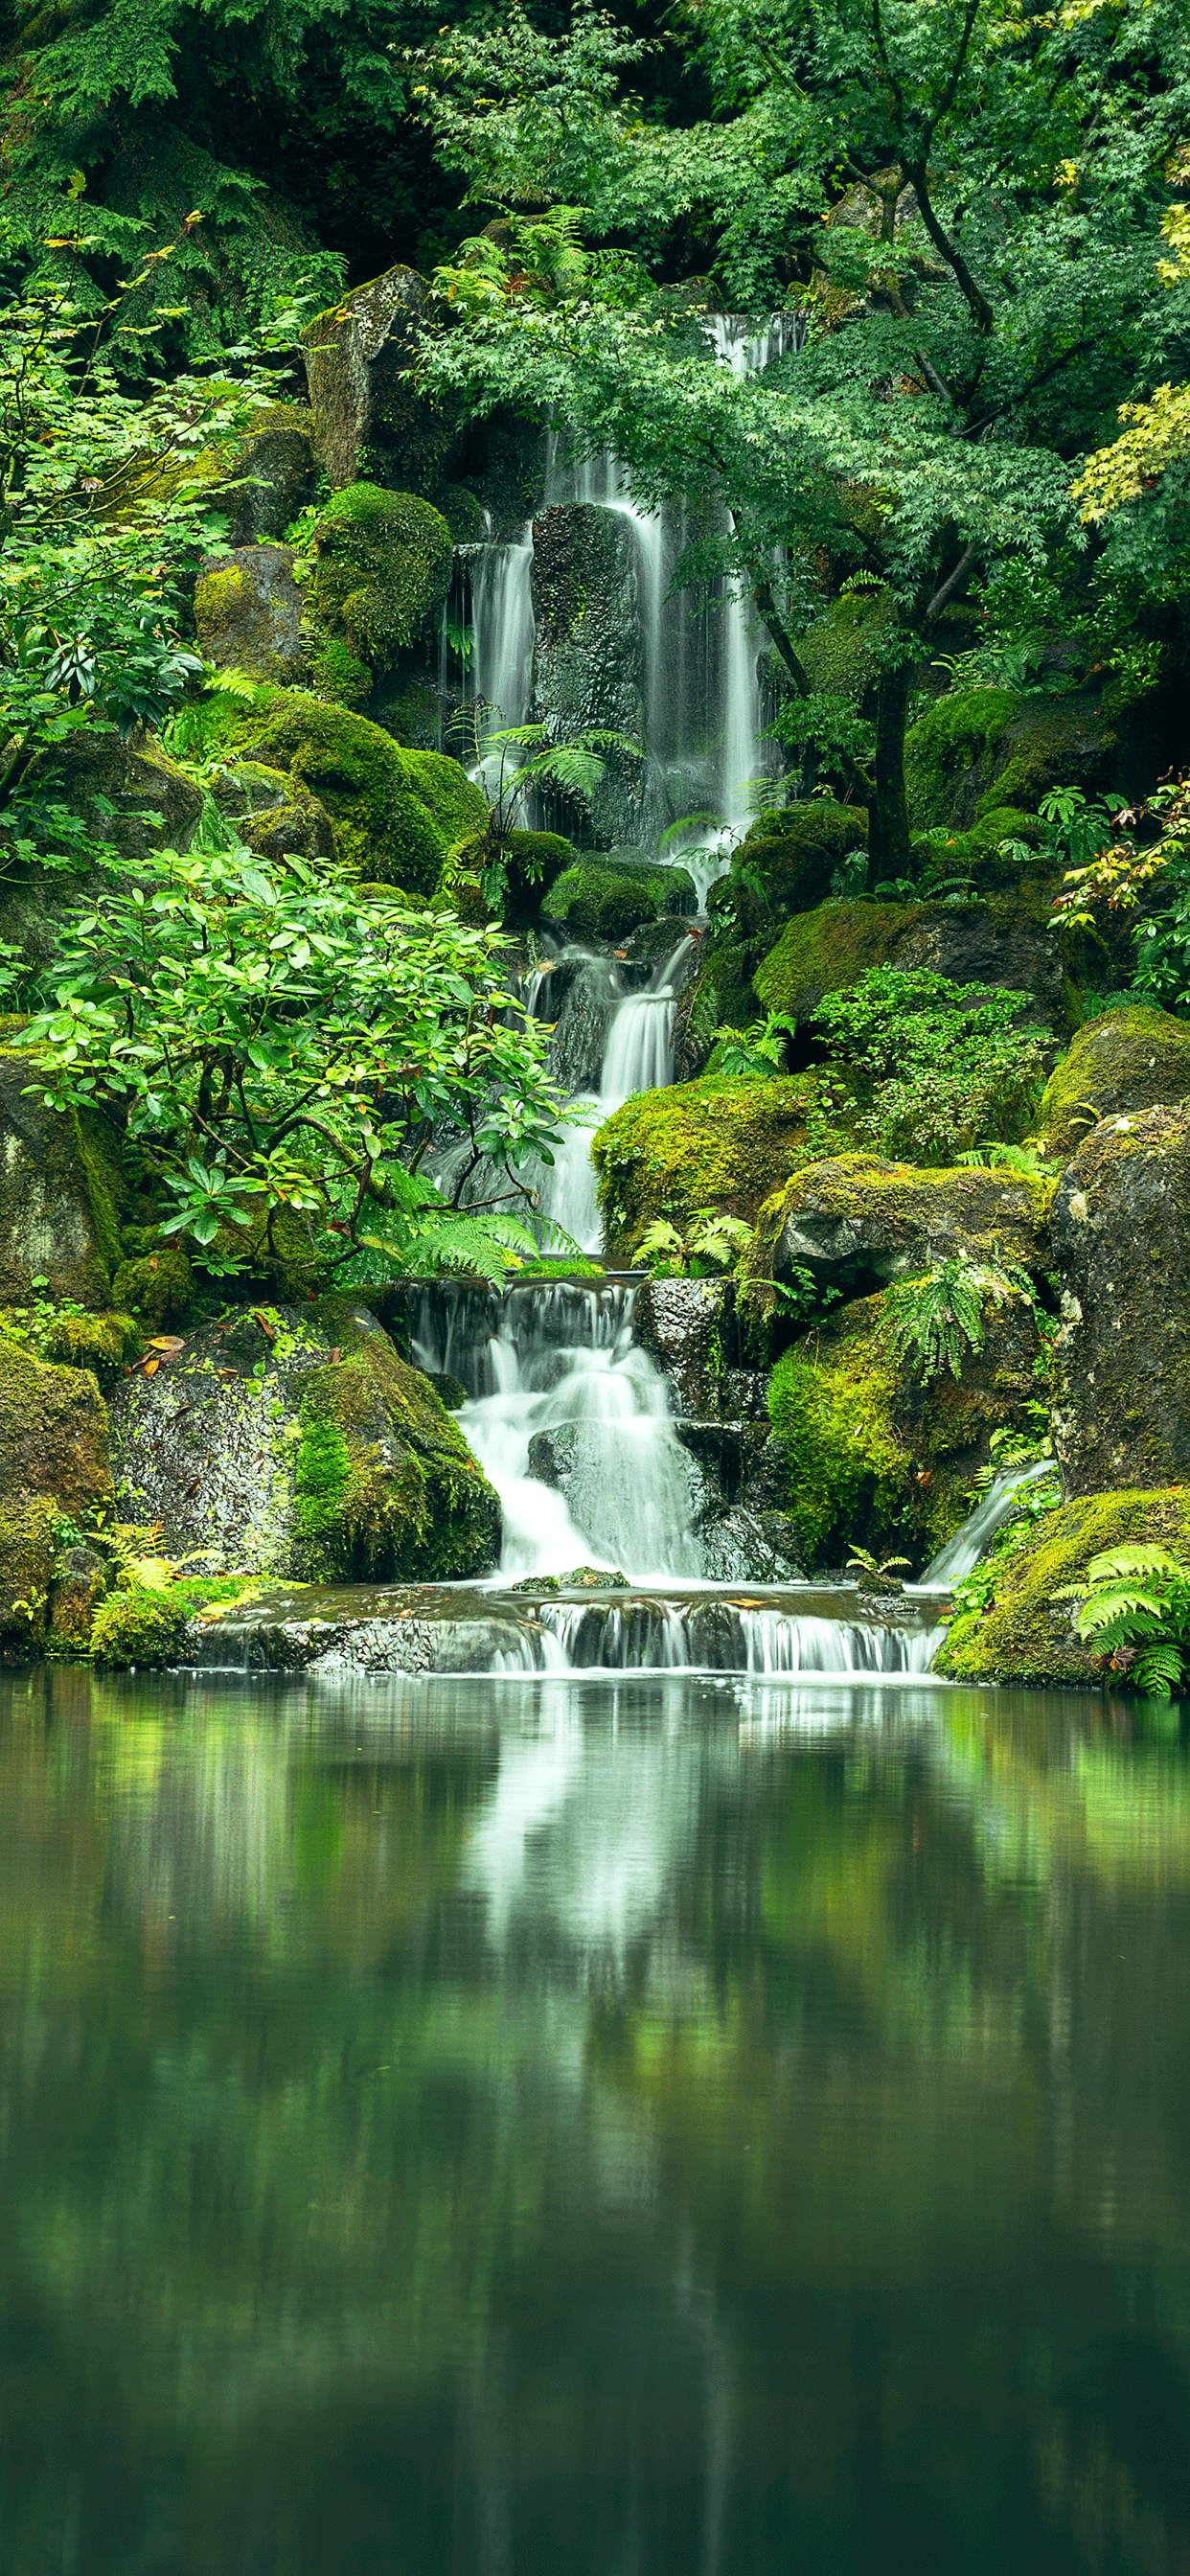 iPhone wallpapers river waterfall Fonds d'écran iPhone du 30/05/2019